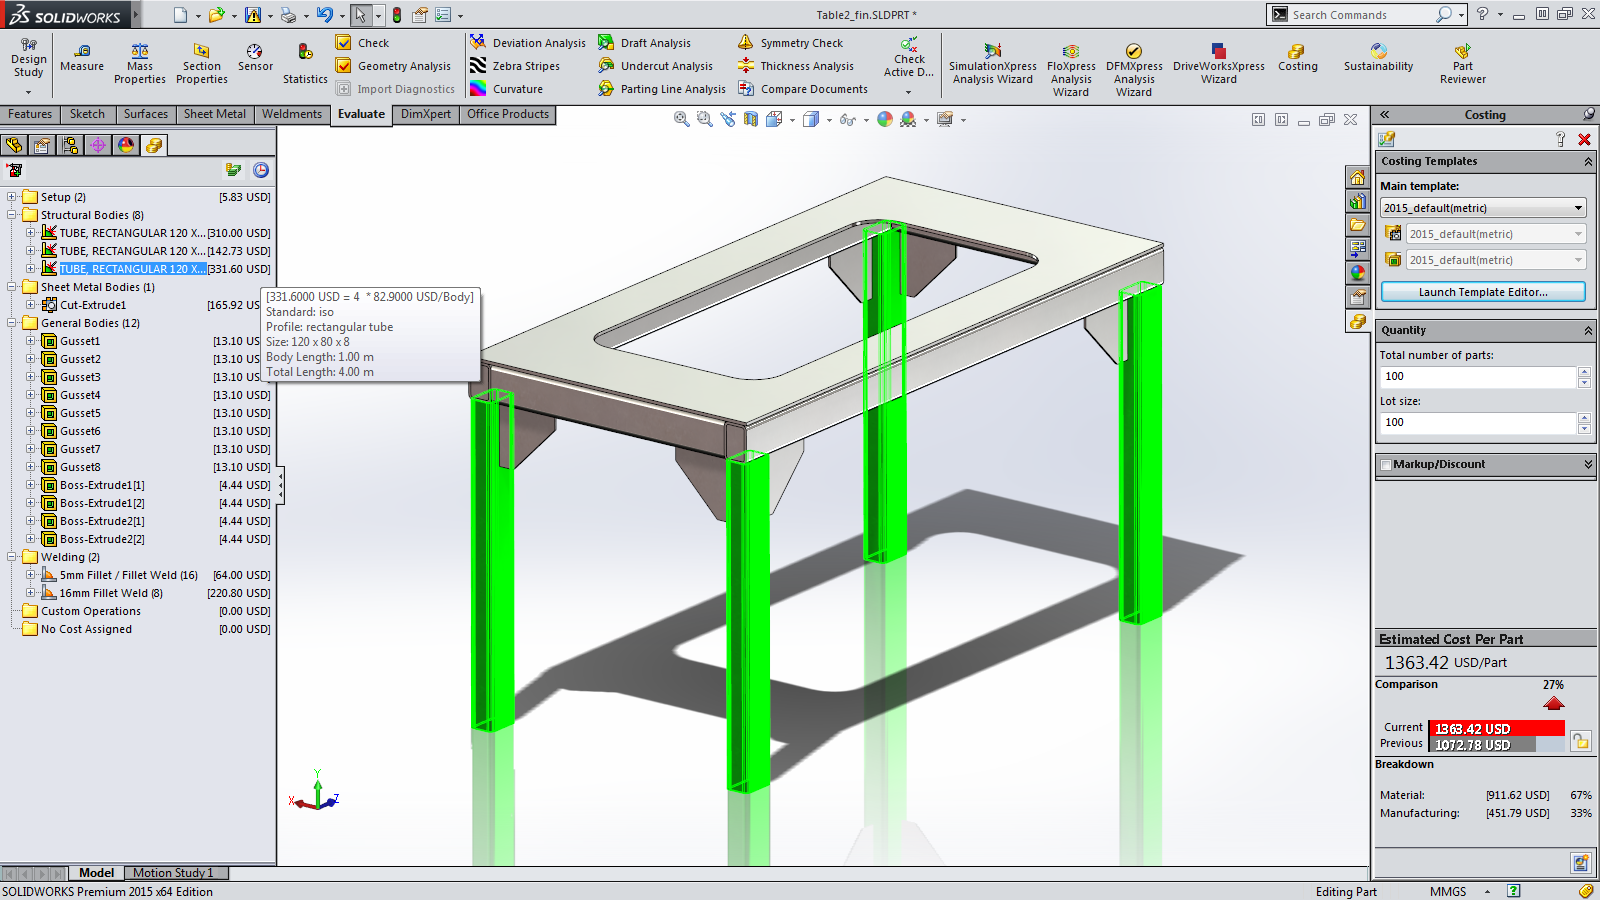 Sneak Peek: 15 Features coming in SOLIDWORKS 2015 – Costing for Weldments